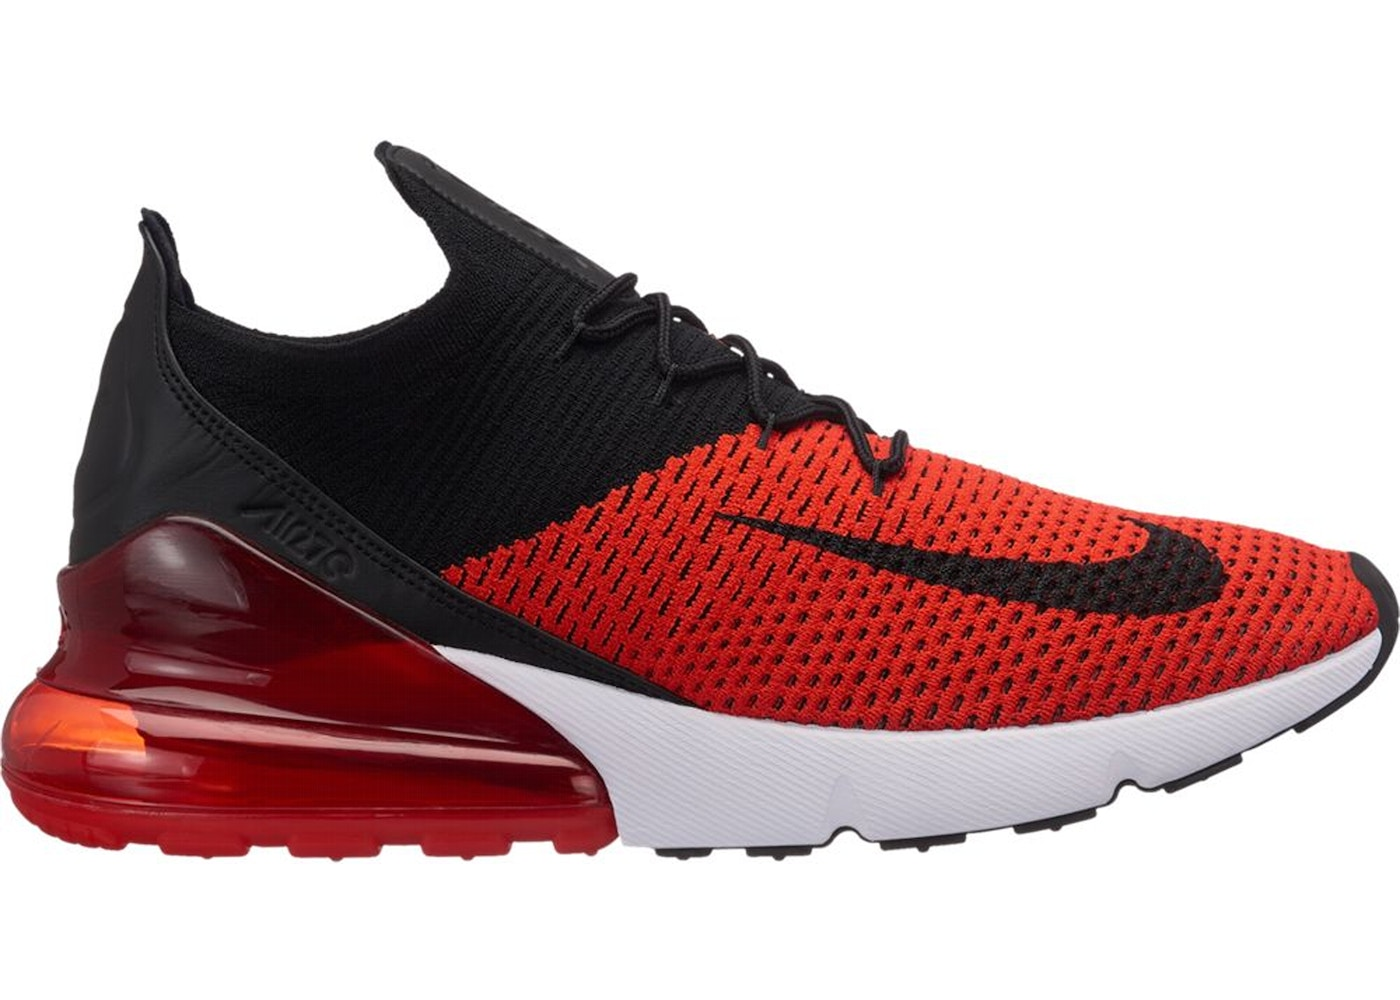 Air Max 270 Flyknit Bred